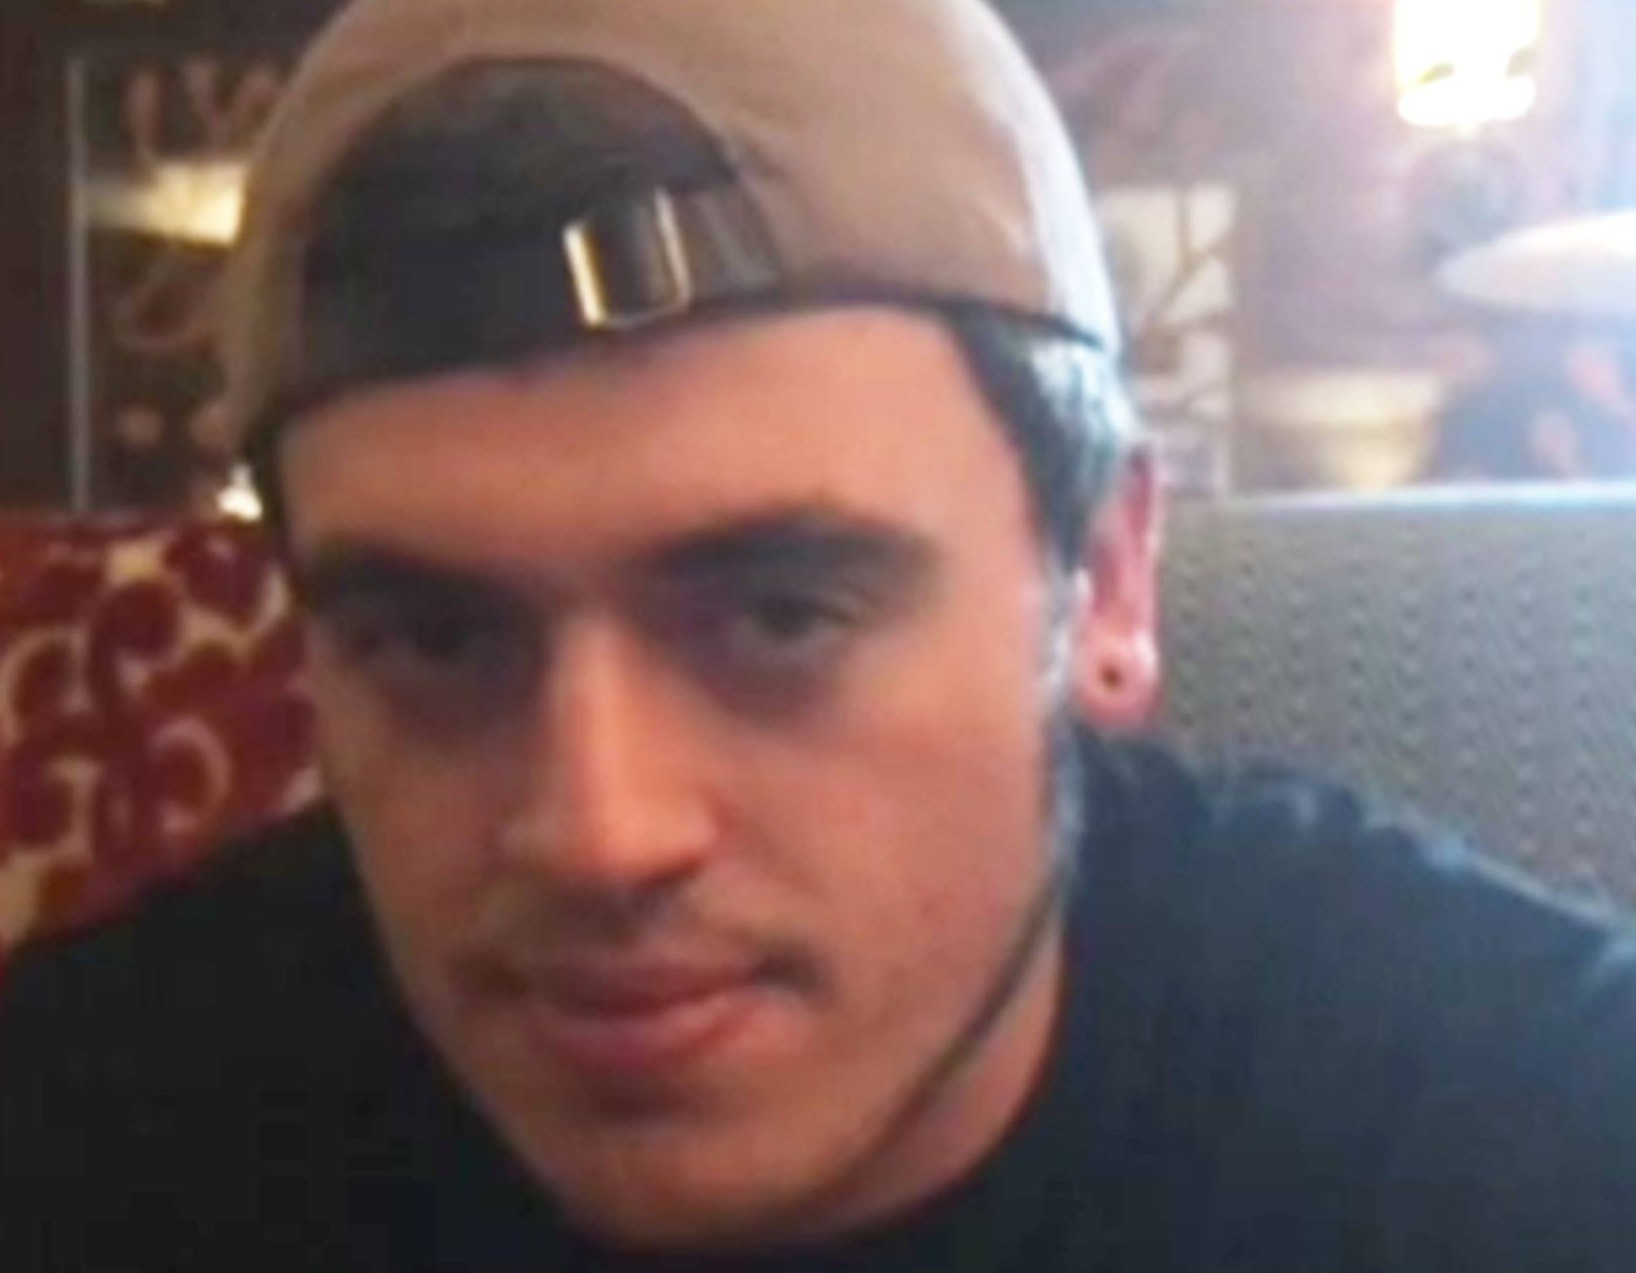 Jed Allen, 21, was being sought by police after the bodies of a 44-year-old man, a 46-year-old woman and a six-year-old girl were discovered in a house in Vicarage Road, Didcot, Oxfordshire